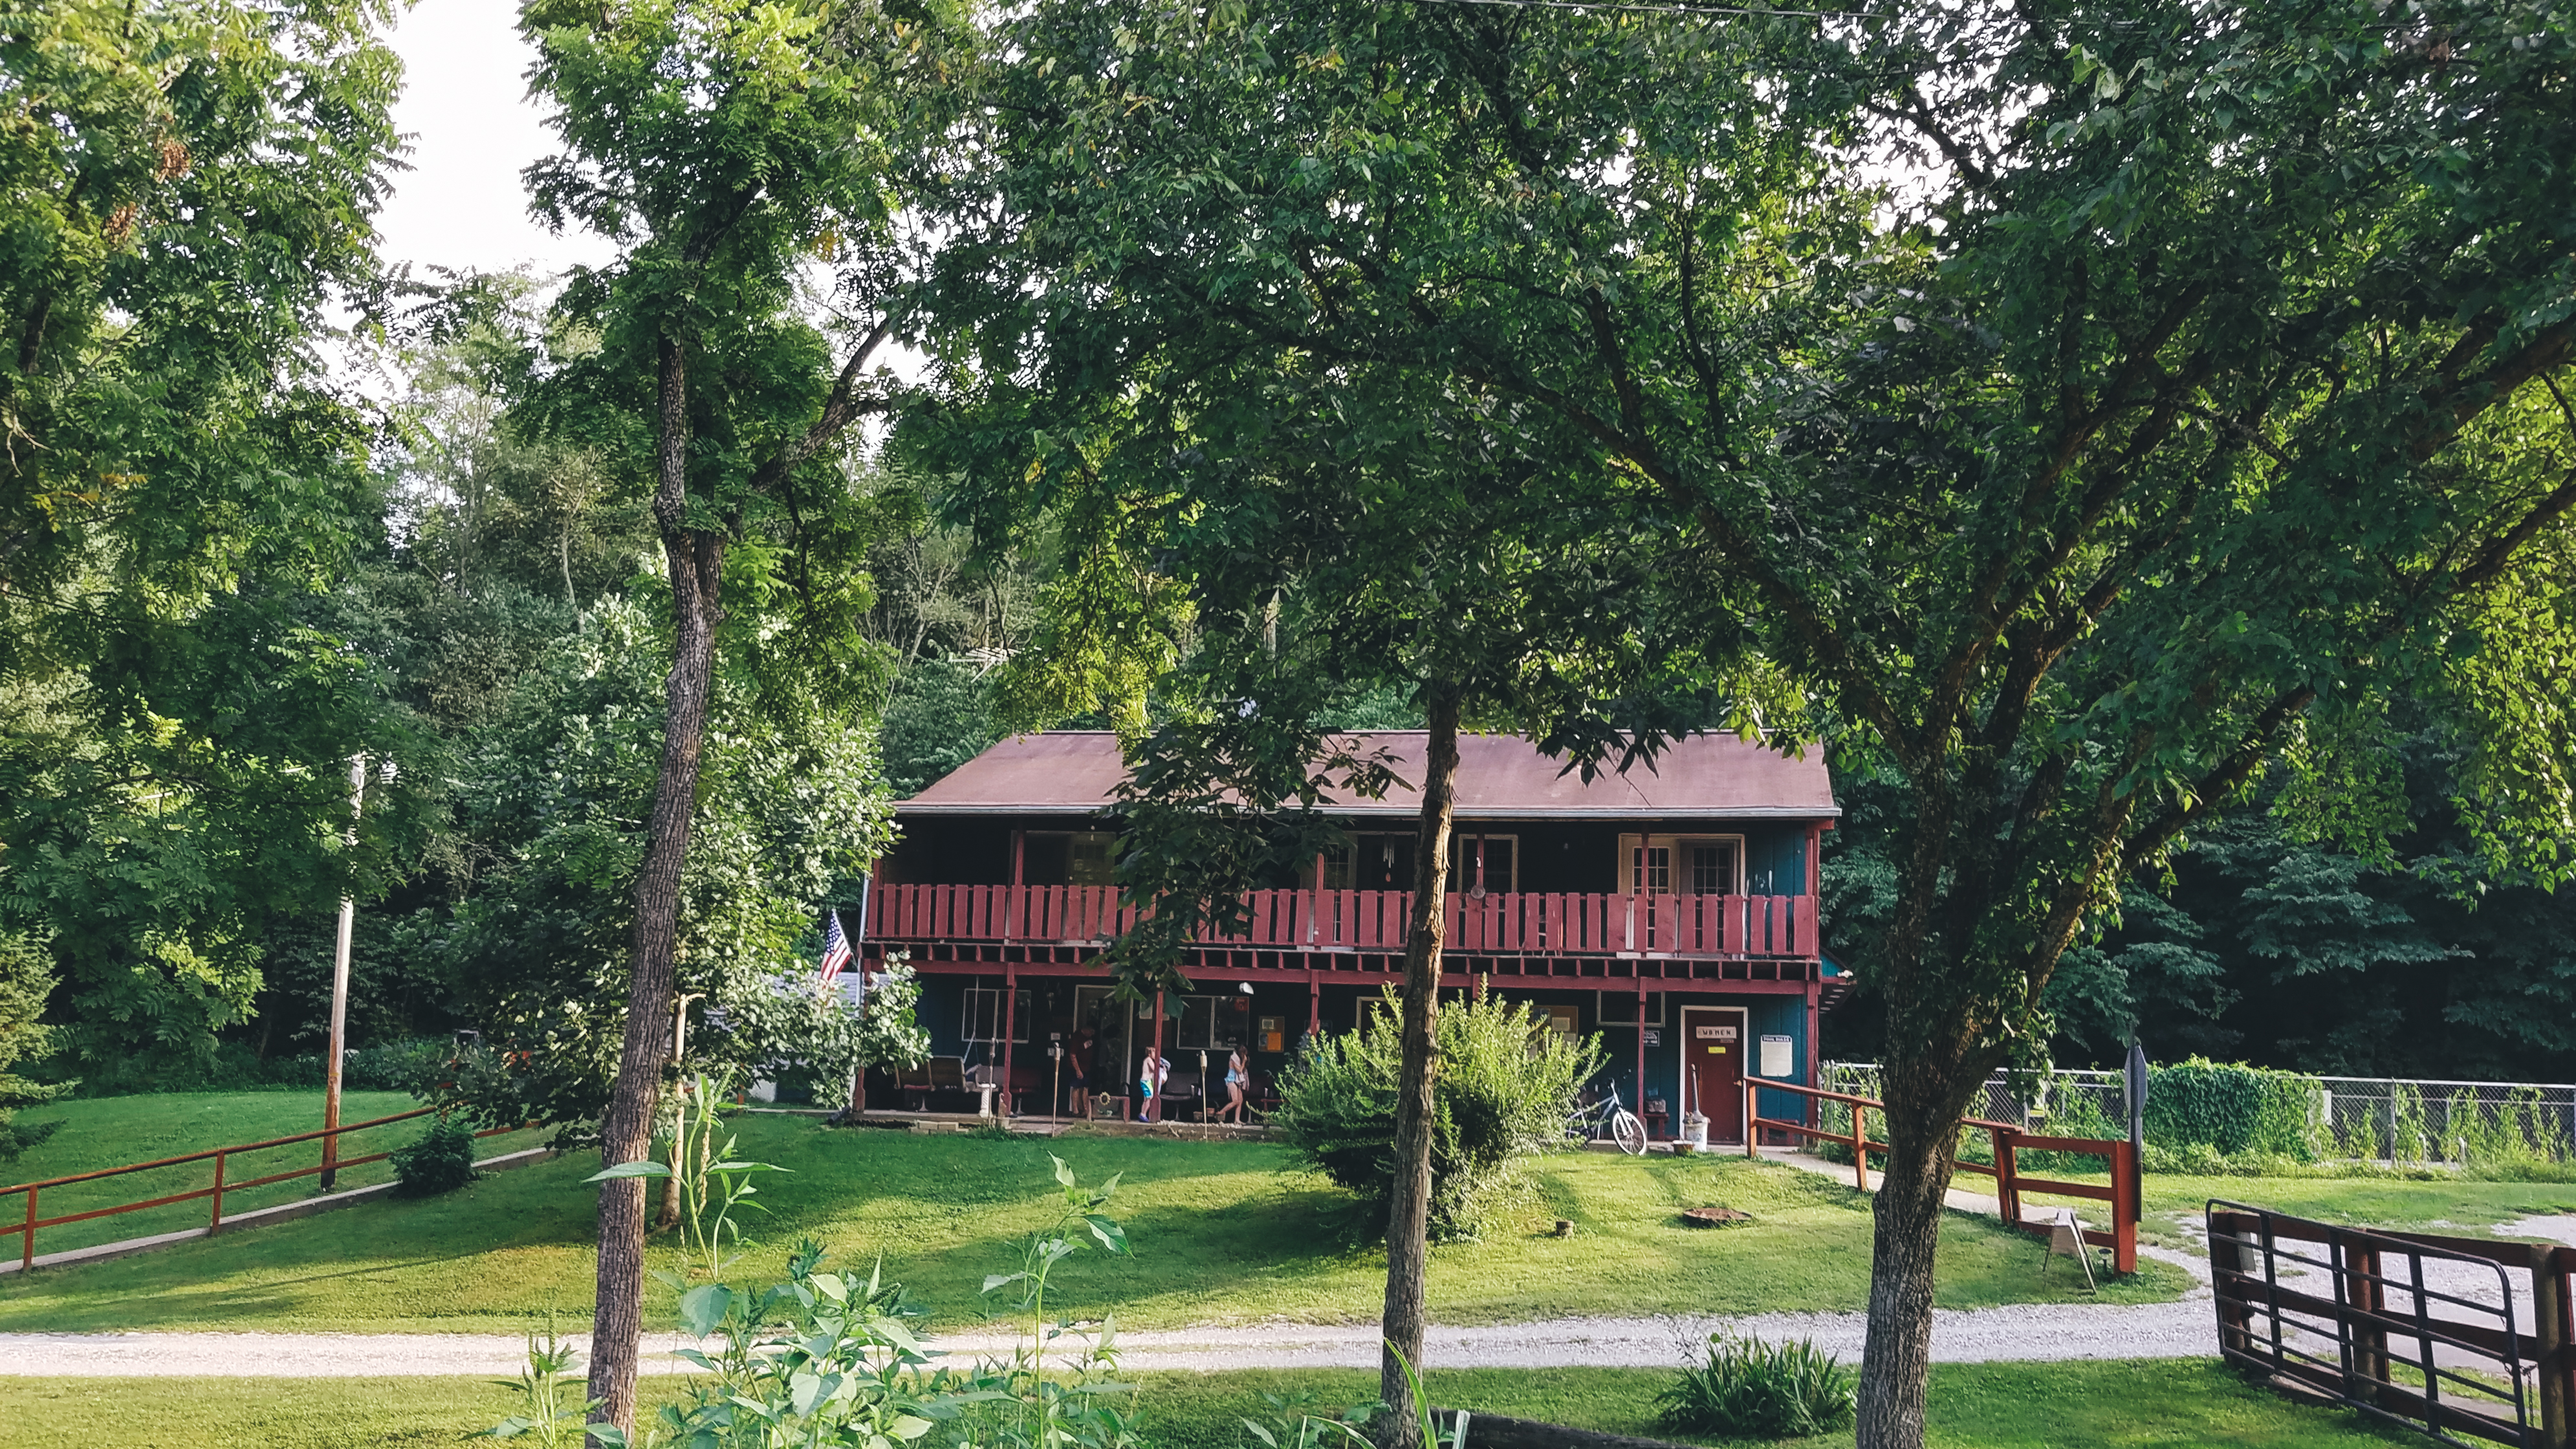 Family Owned Campground Delivers Superior Hospitality